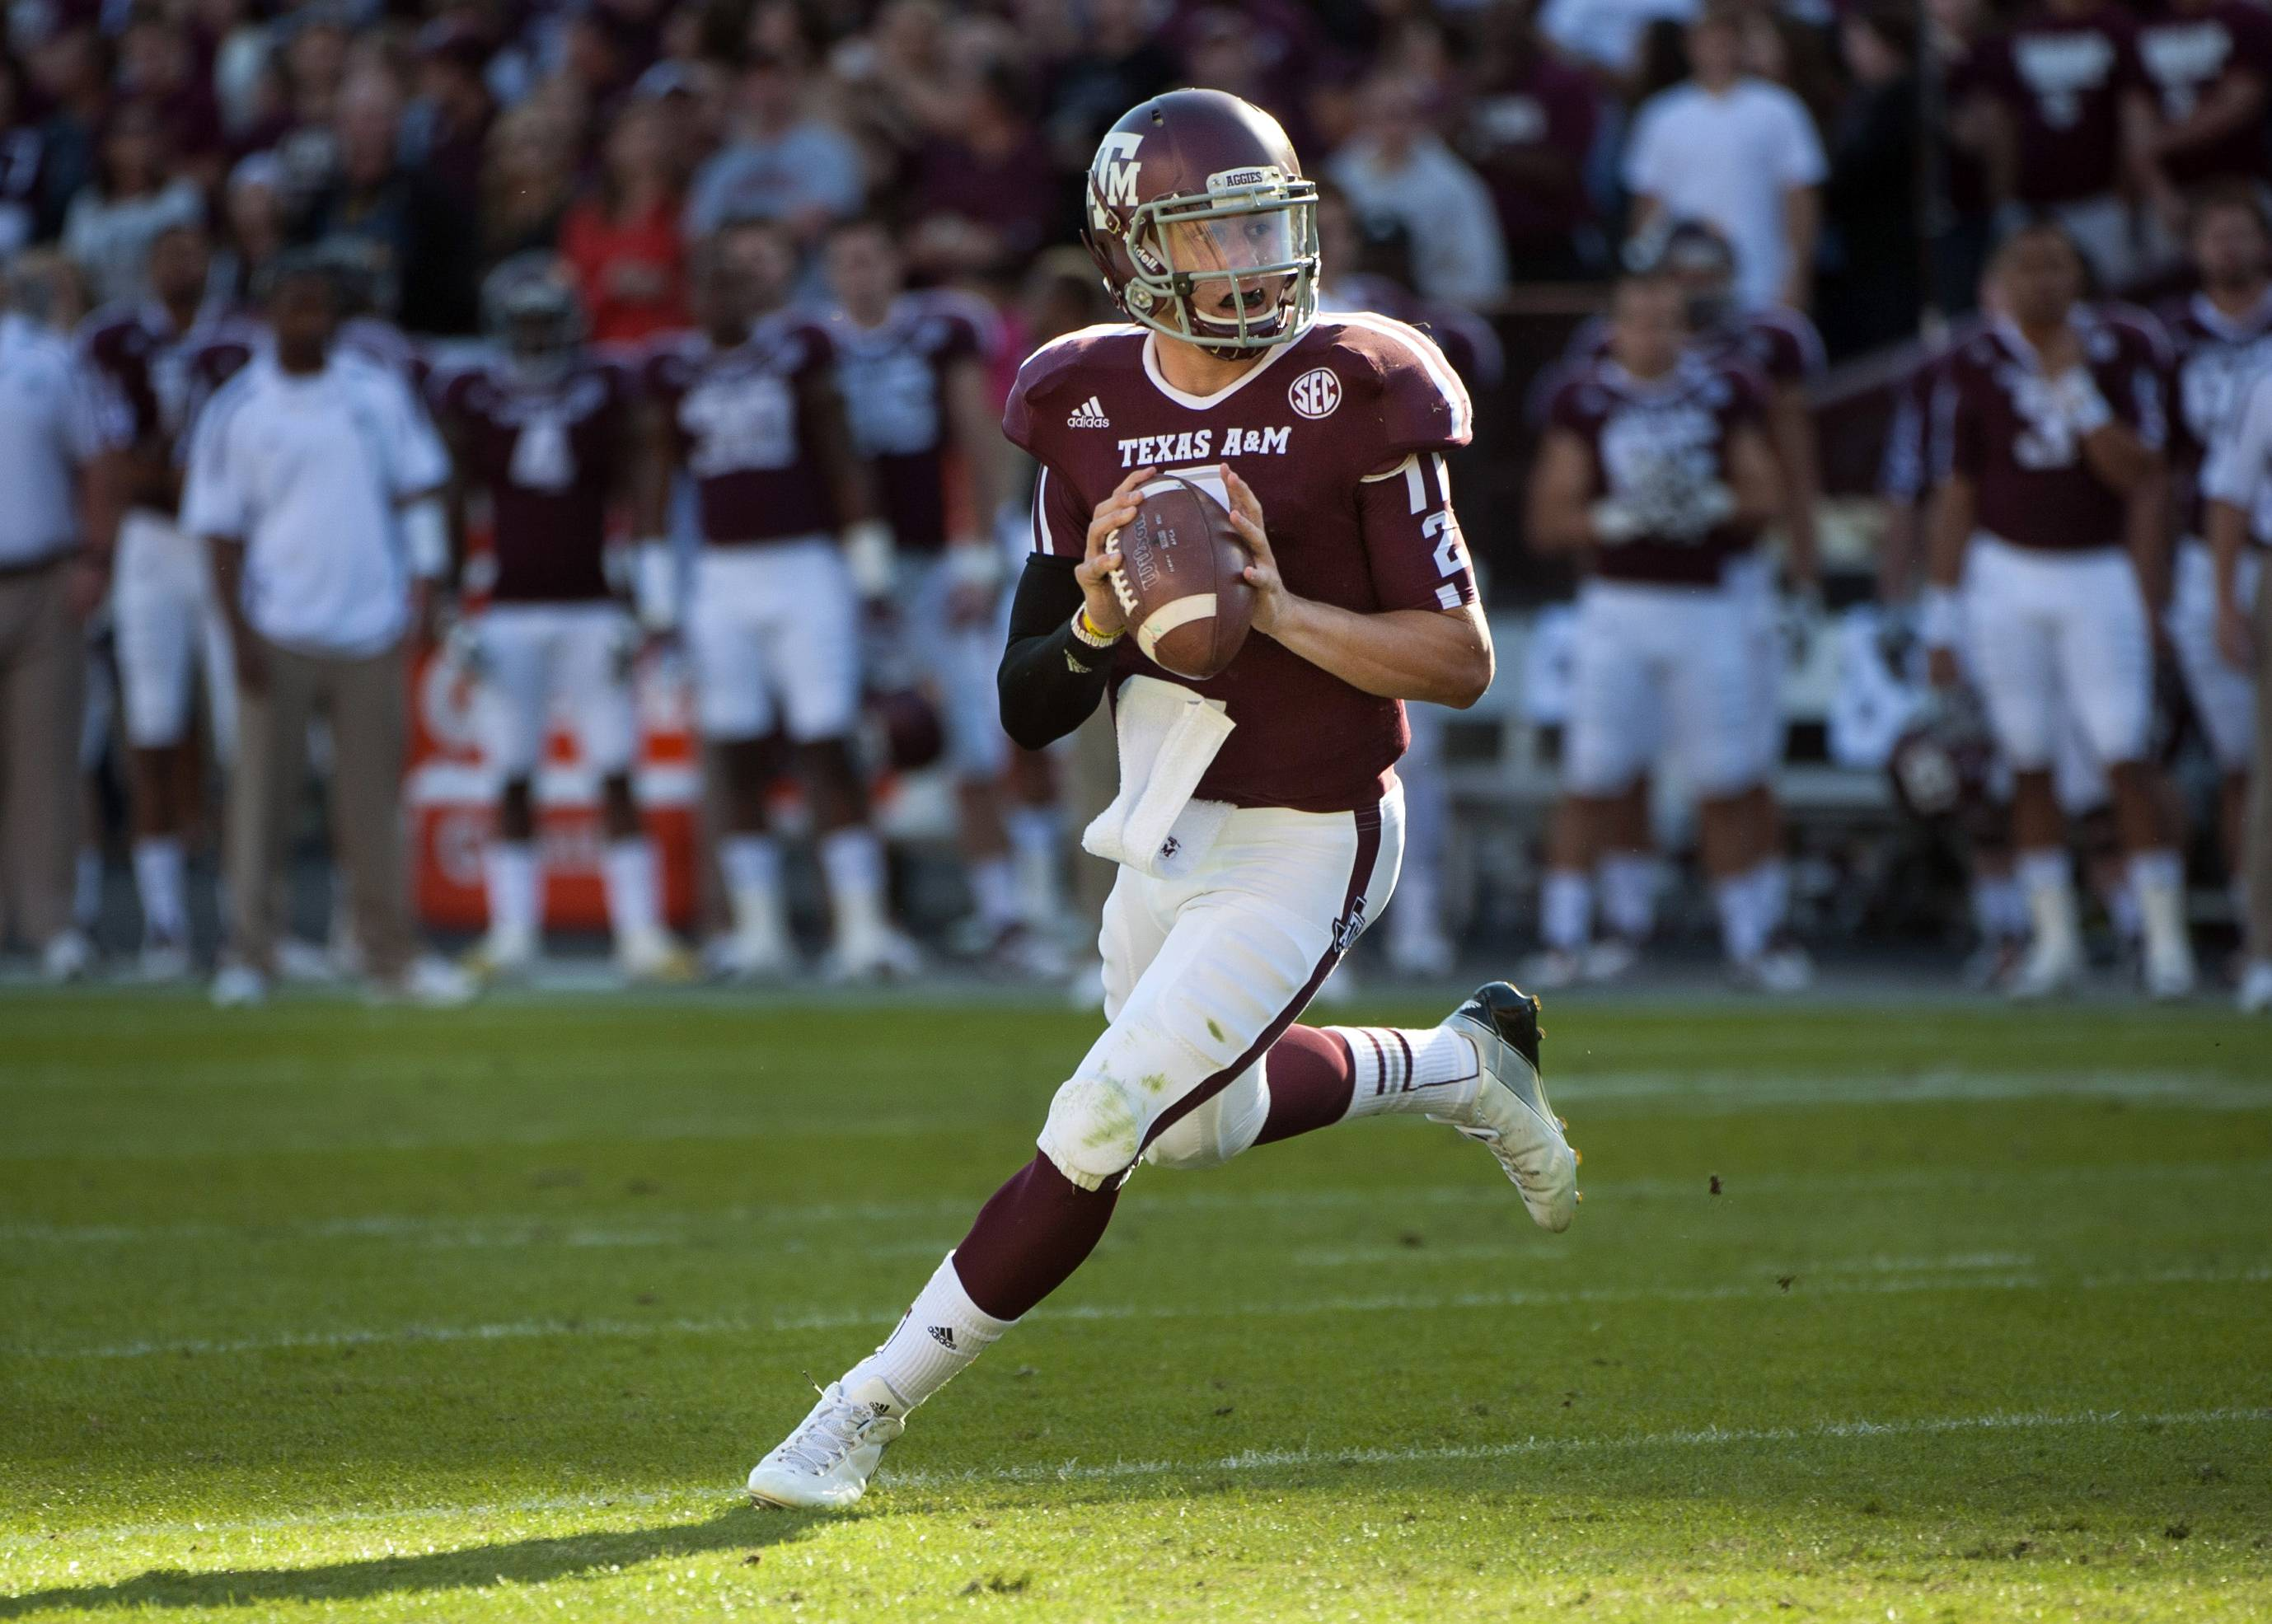 Johnny Manziel could be the answer to Cleveland's prayers at quarterback. The polarizing and popular Texas A&M star will likely be available when the Browns pick fourth in next week's NFL draft.